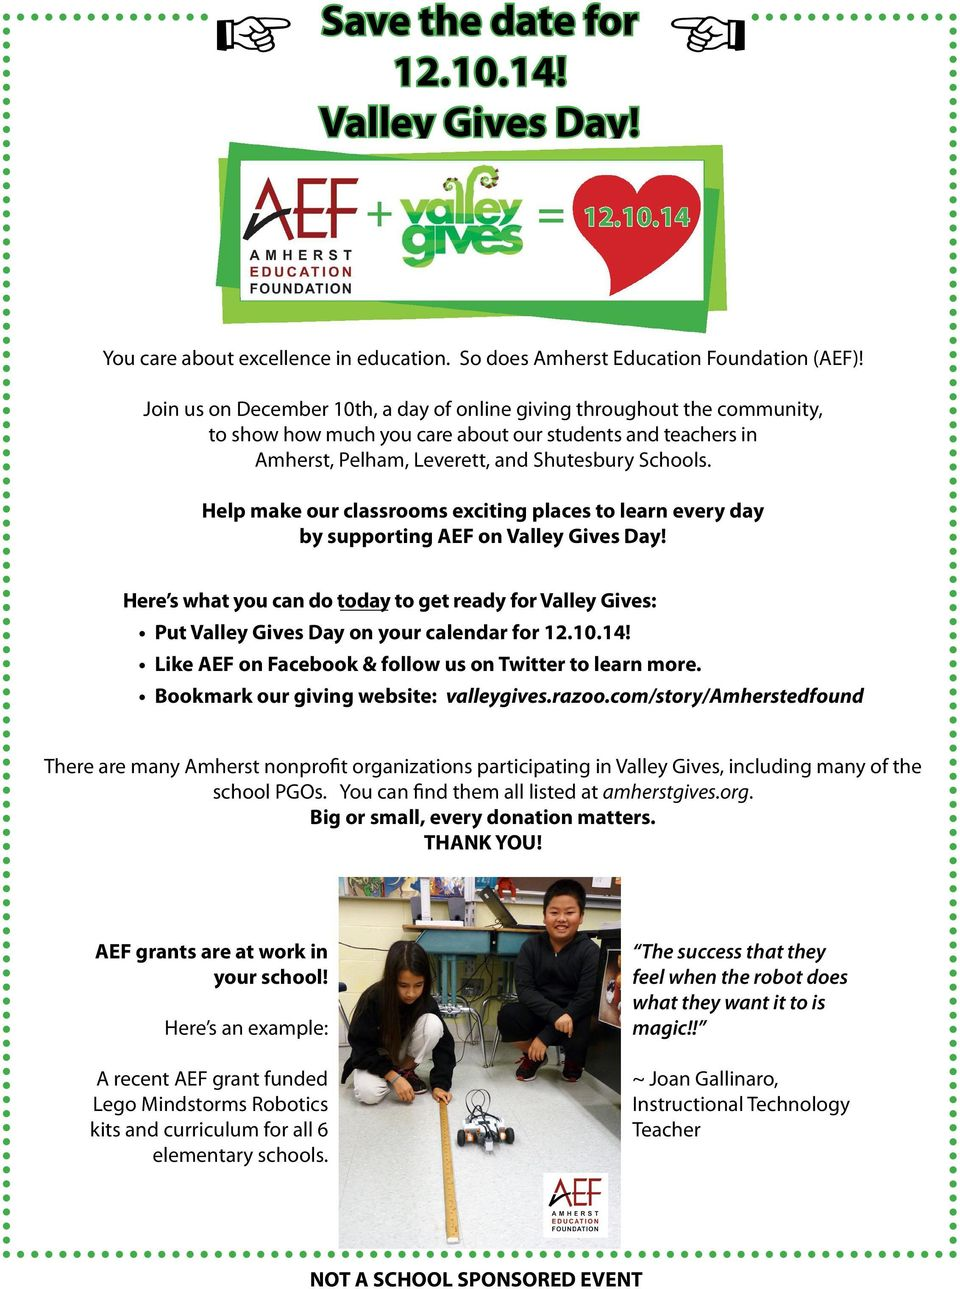 Help make our classrooms exciting places to learn every day by supporting AEF on Valley Gives Day!